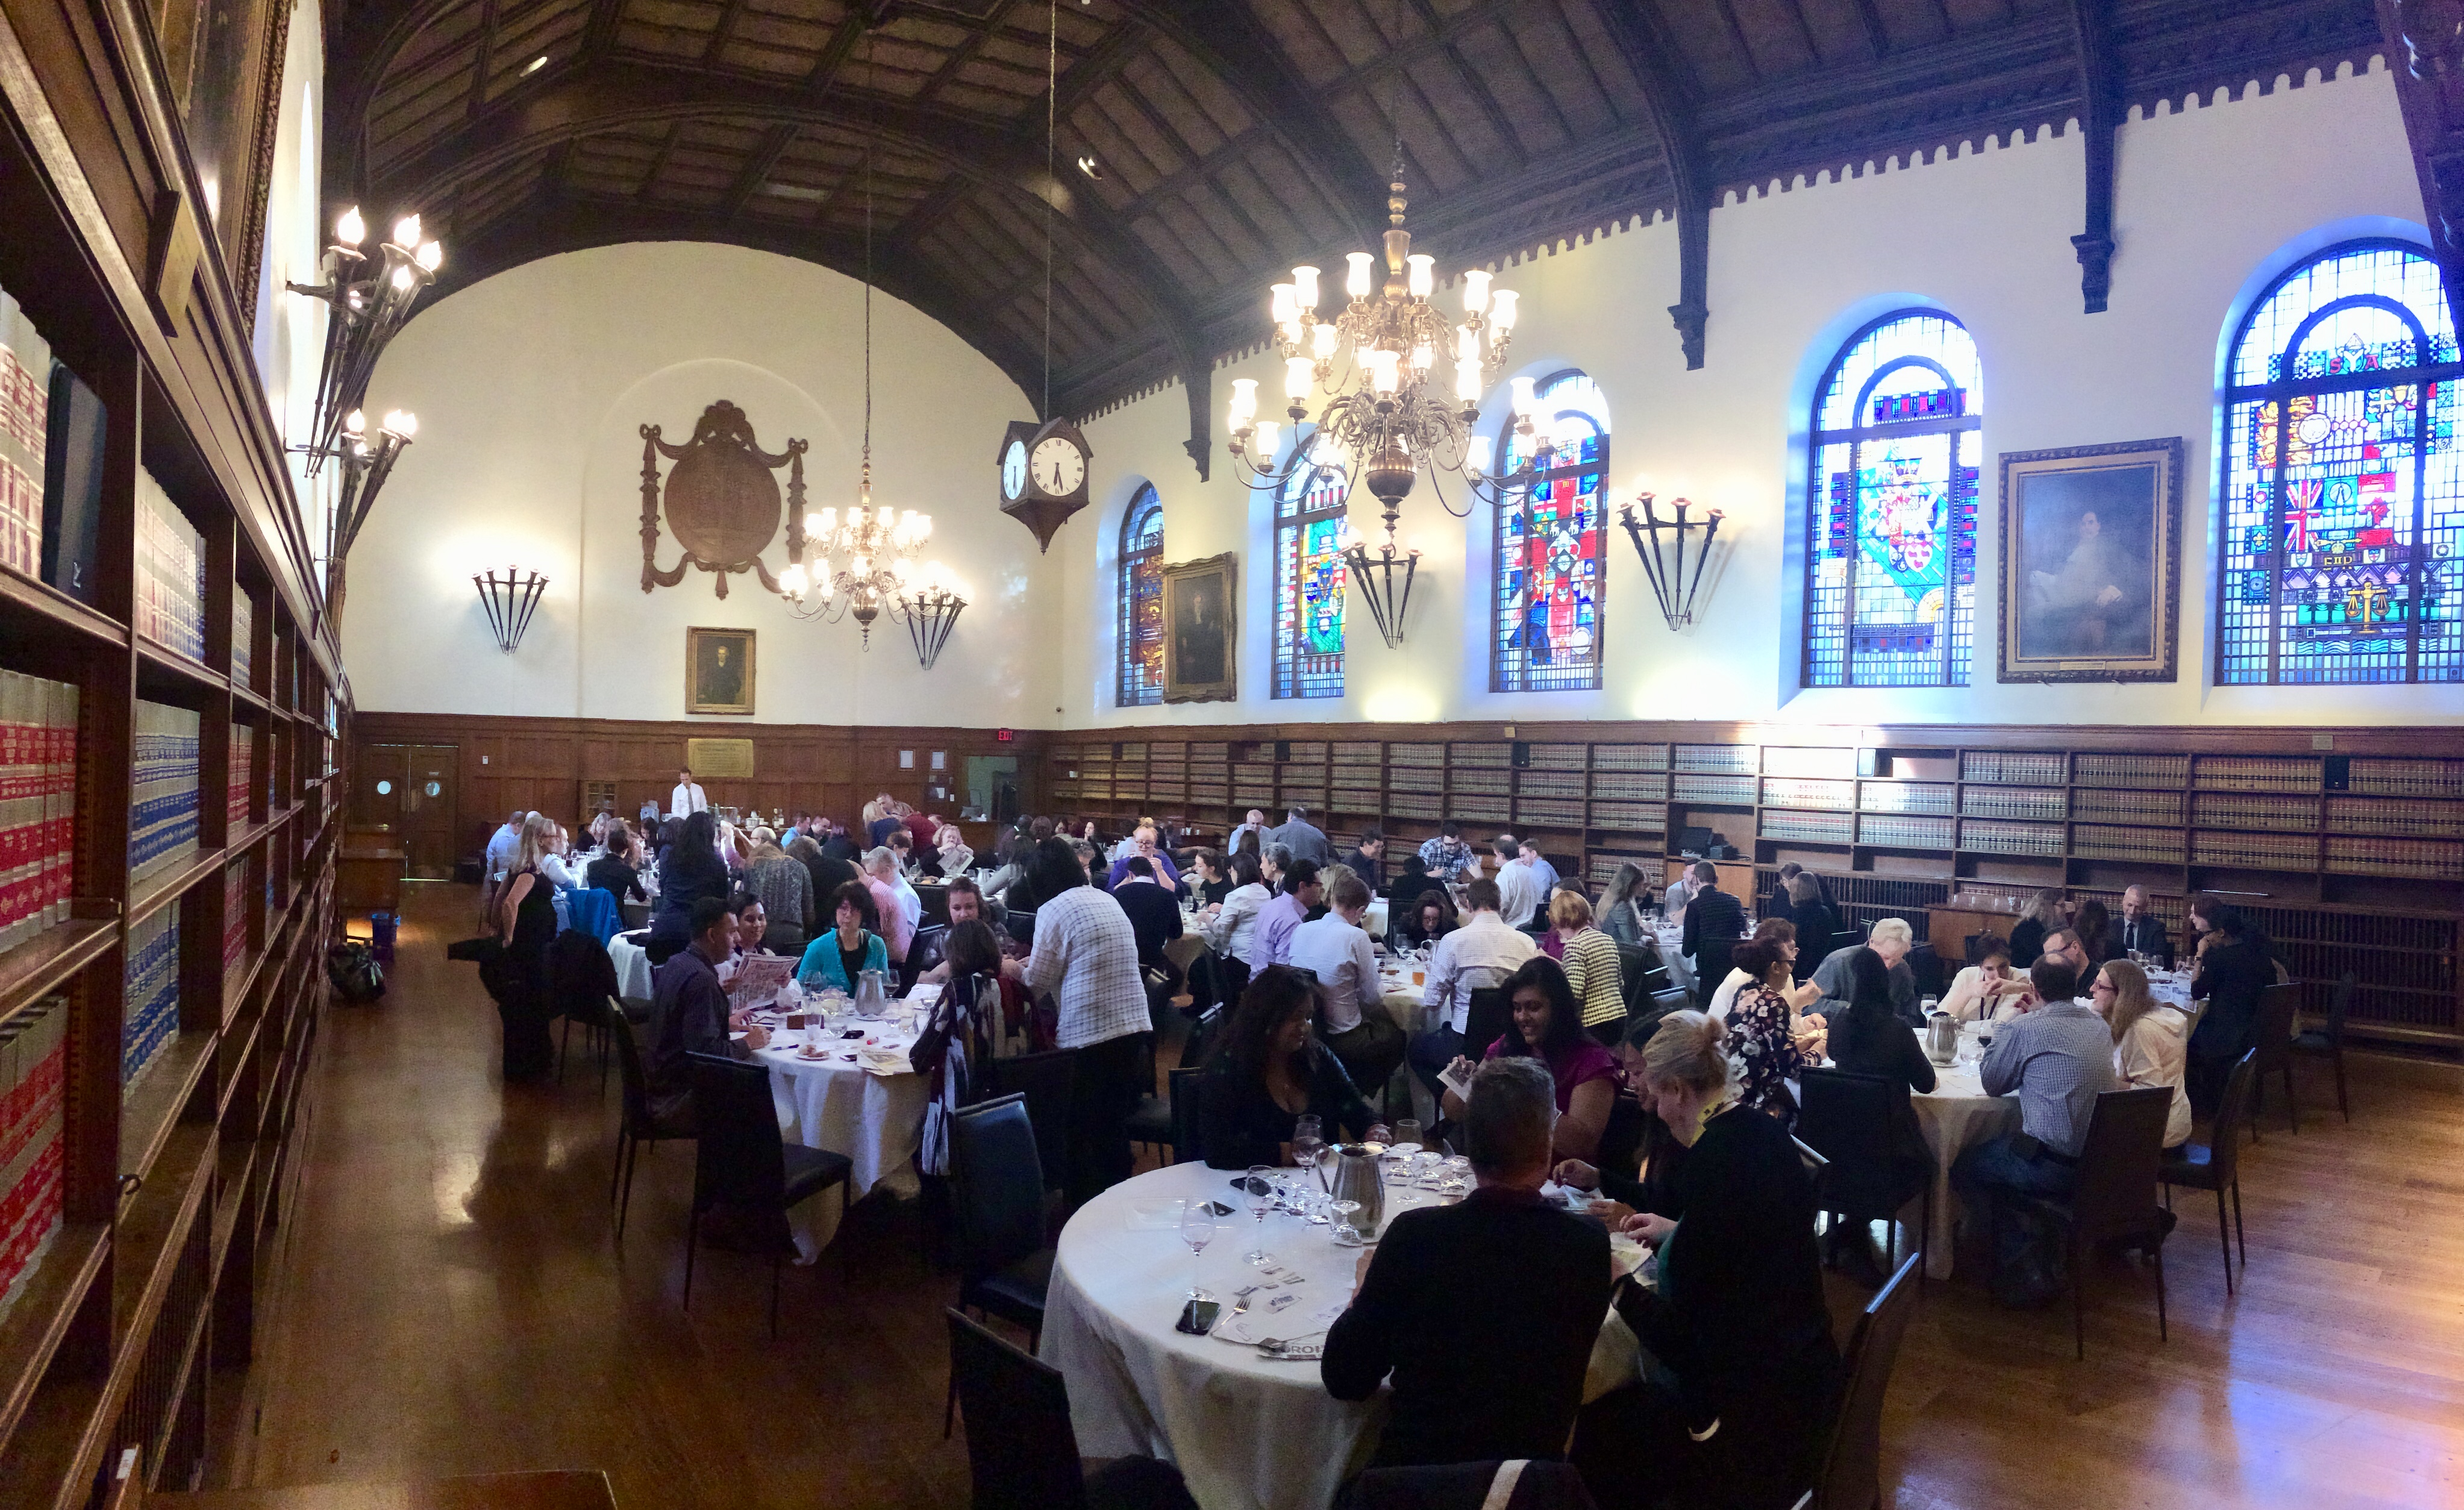 osgoode hall quiz coconut best venues toronto Best Venues For Corporate Events